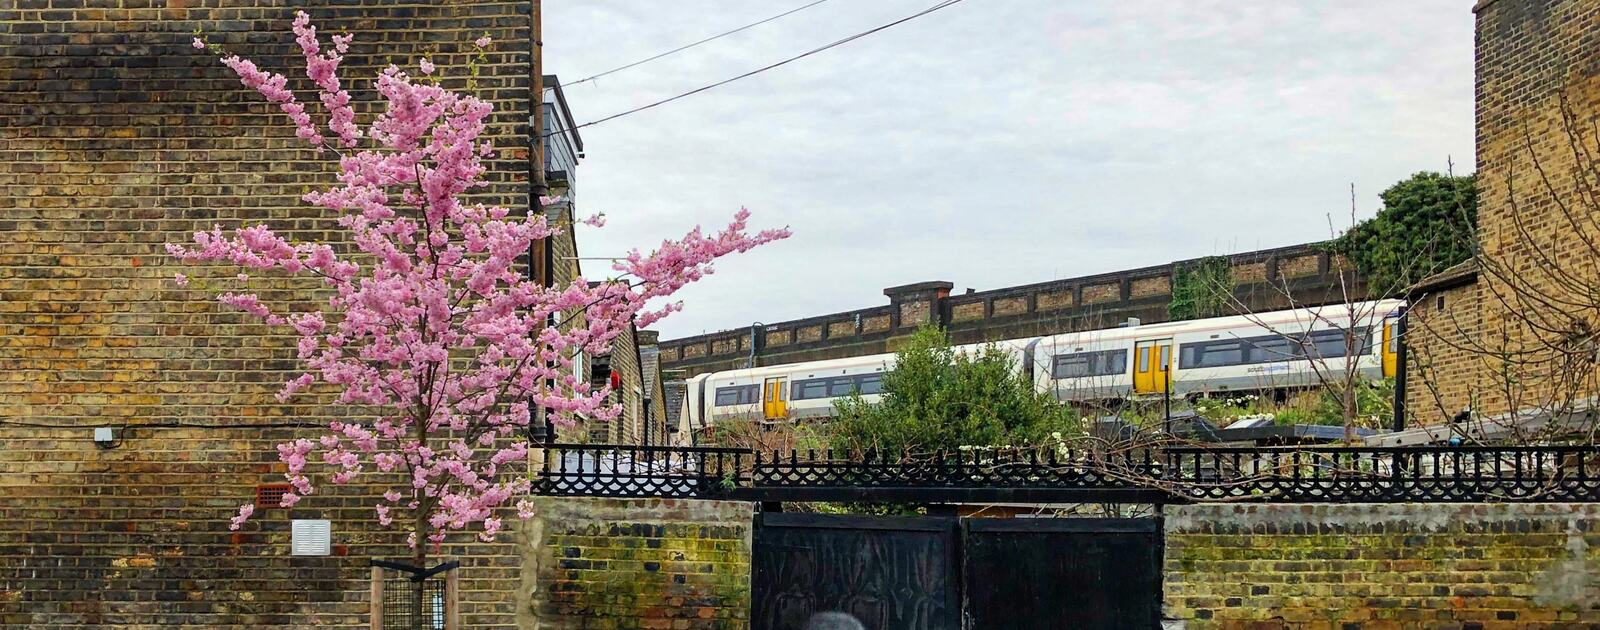 A tree in blossom in South London - Submission to our Spring Among the Trees photo competition from staff member Glen Wilson